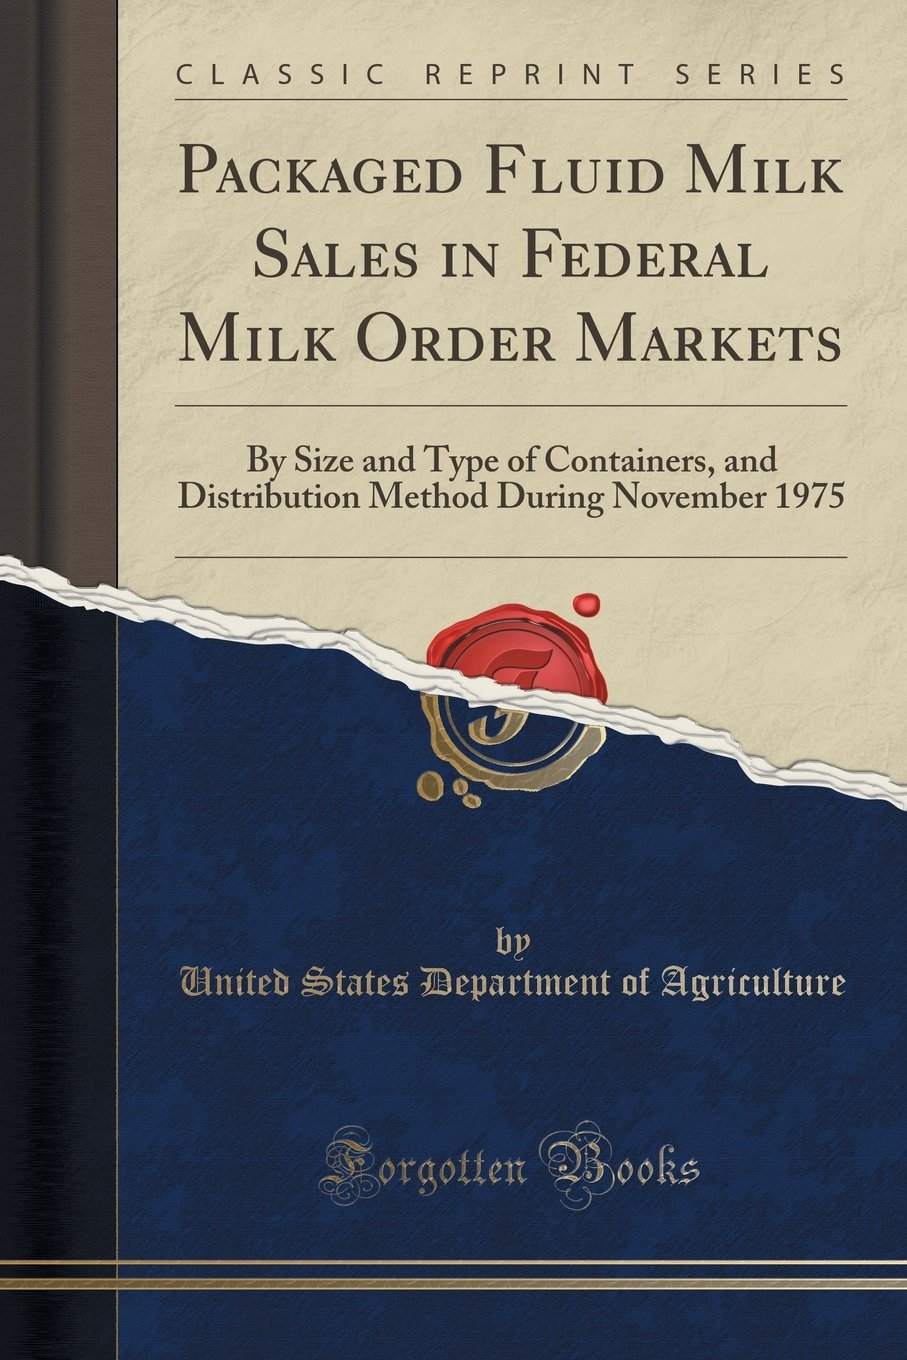 Packaged Fluid Milk Sales in Federal Milk Order Markets: By Size and Type of Containers, and Distribution Method During November 1975 (Classic Reprint) PDF